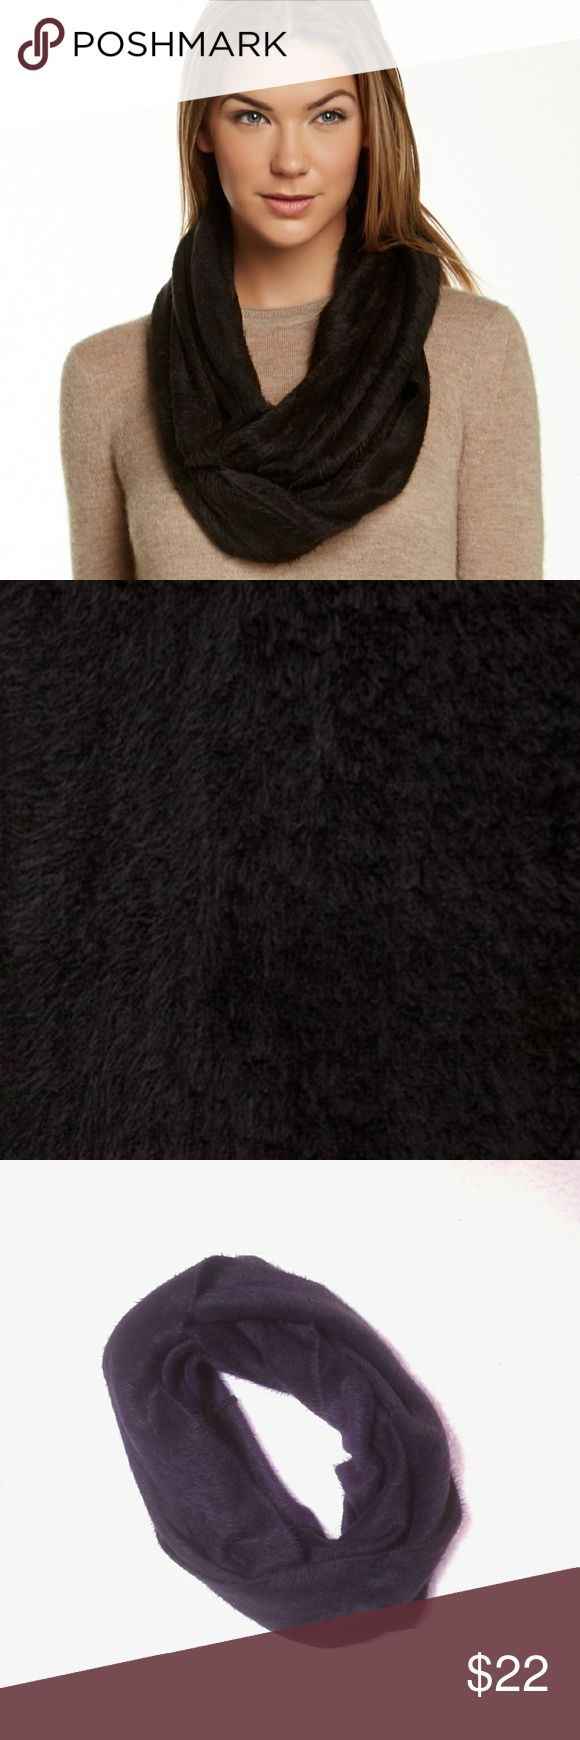 Cejon Infinity Scarf New Black Faux Fur Hairy Brushed Infinity Scarf - from Nordstrom Cejon Accessories Scarves & Wraps